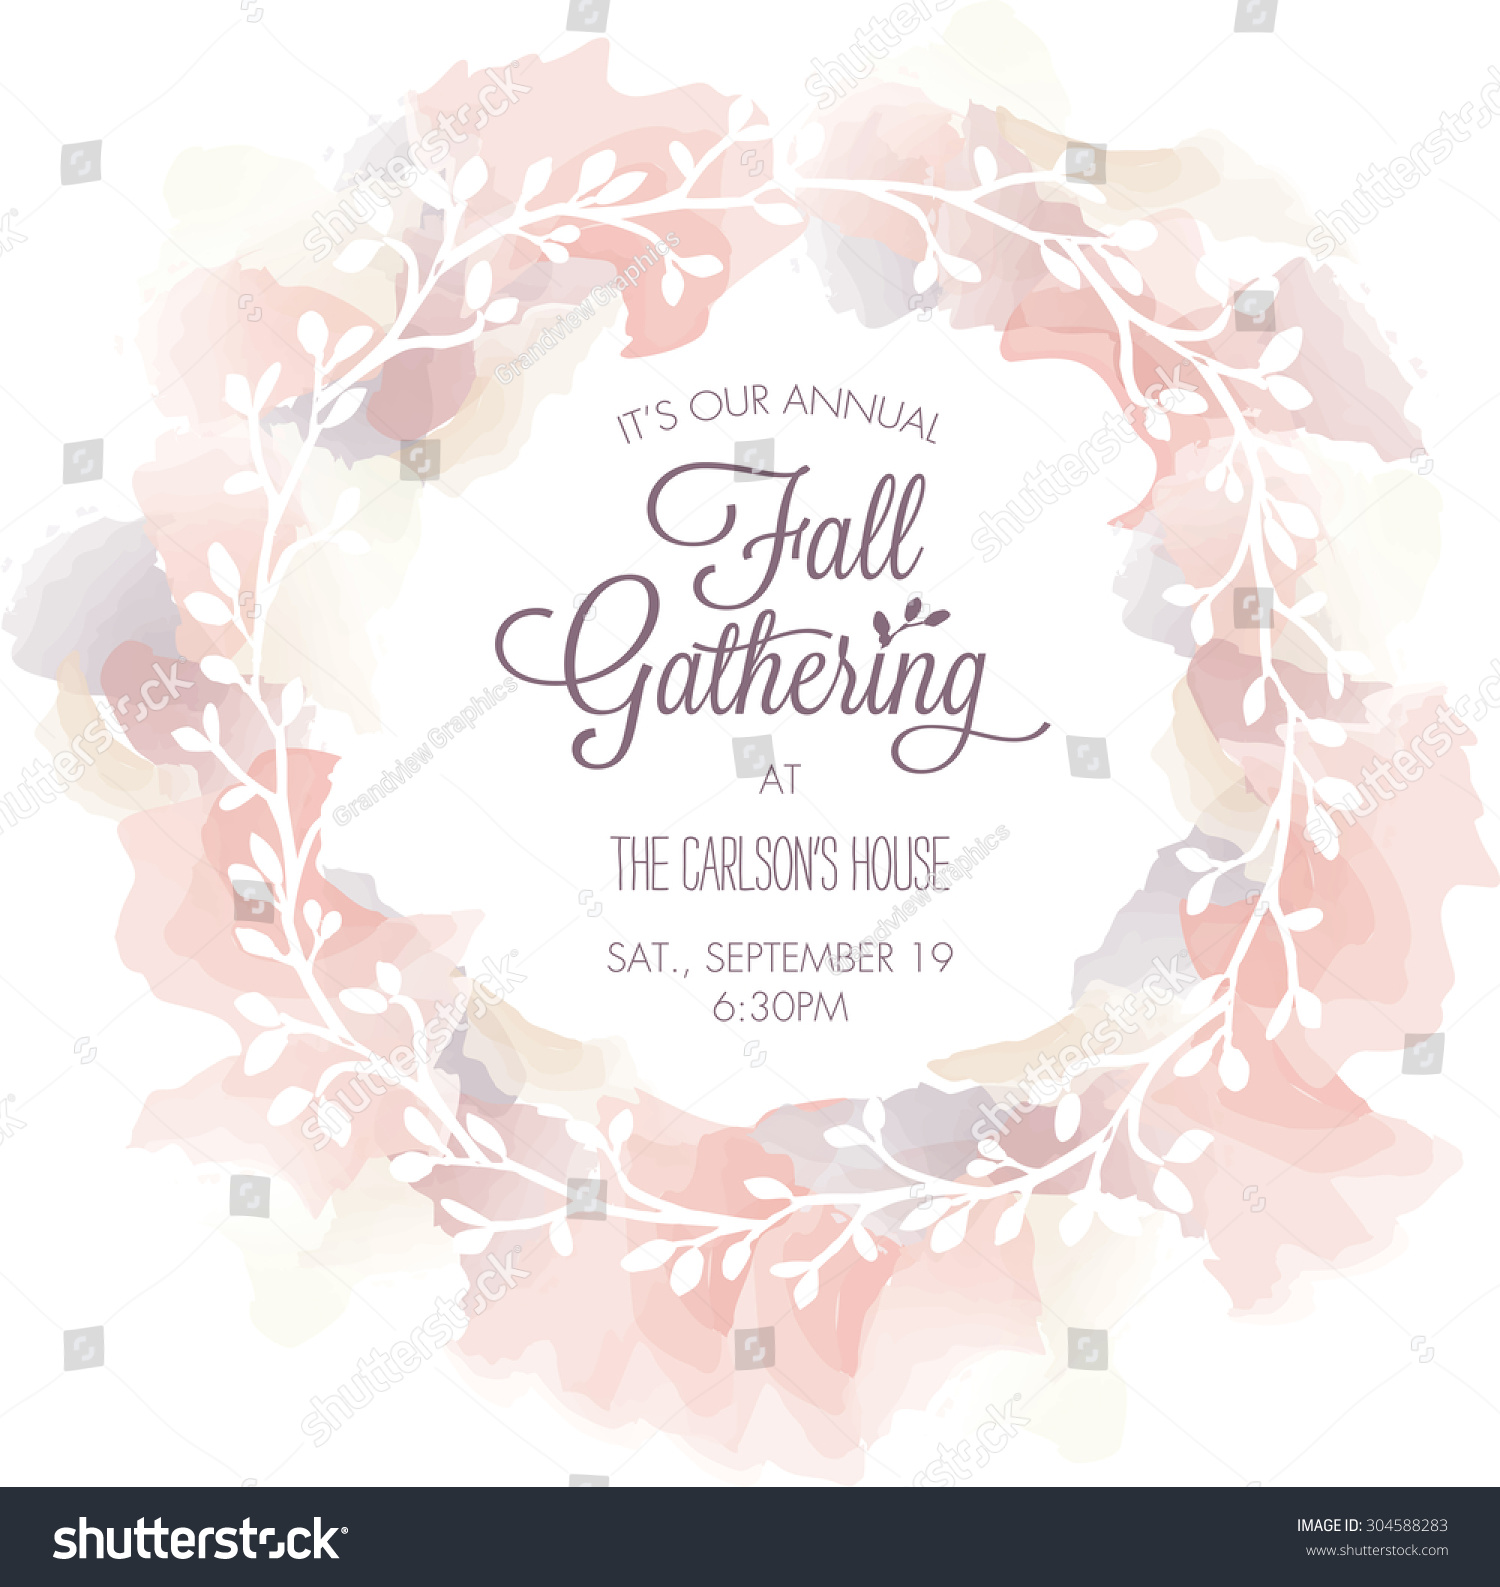 Fall gathering invitation template watercolor wreath stock vector fall gathering invitation template with watercolor wreath vector stopboris Choice Image